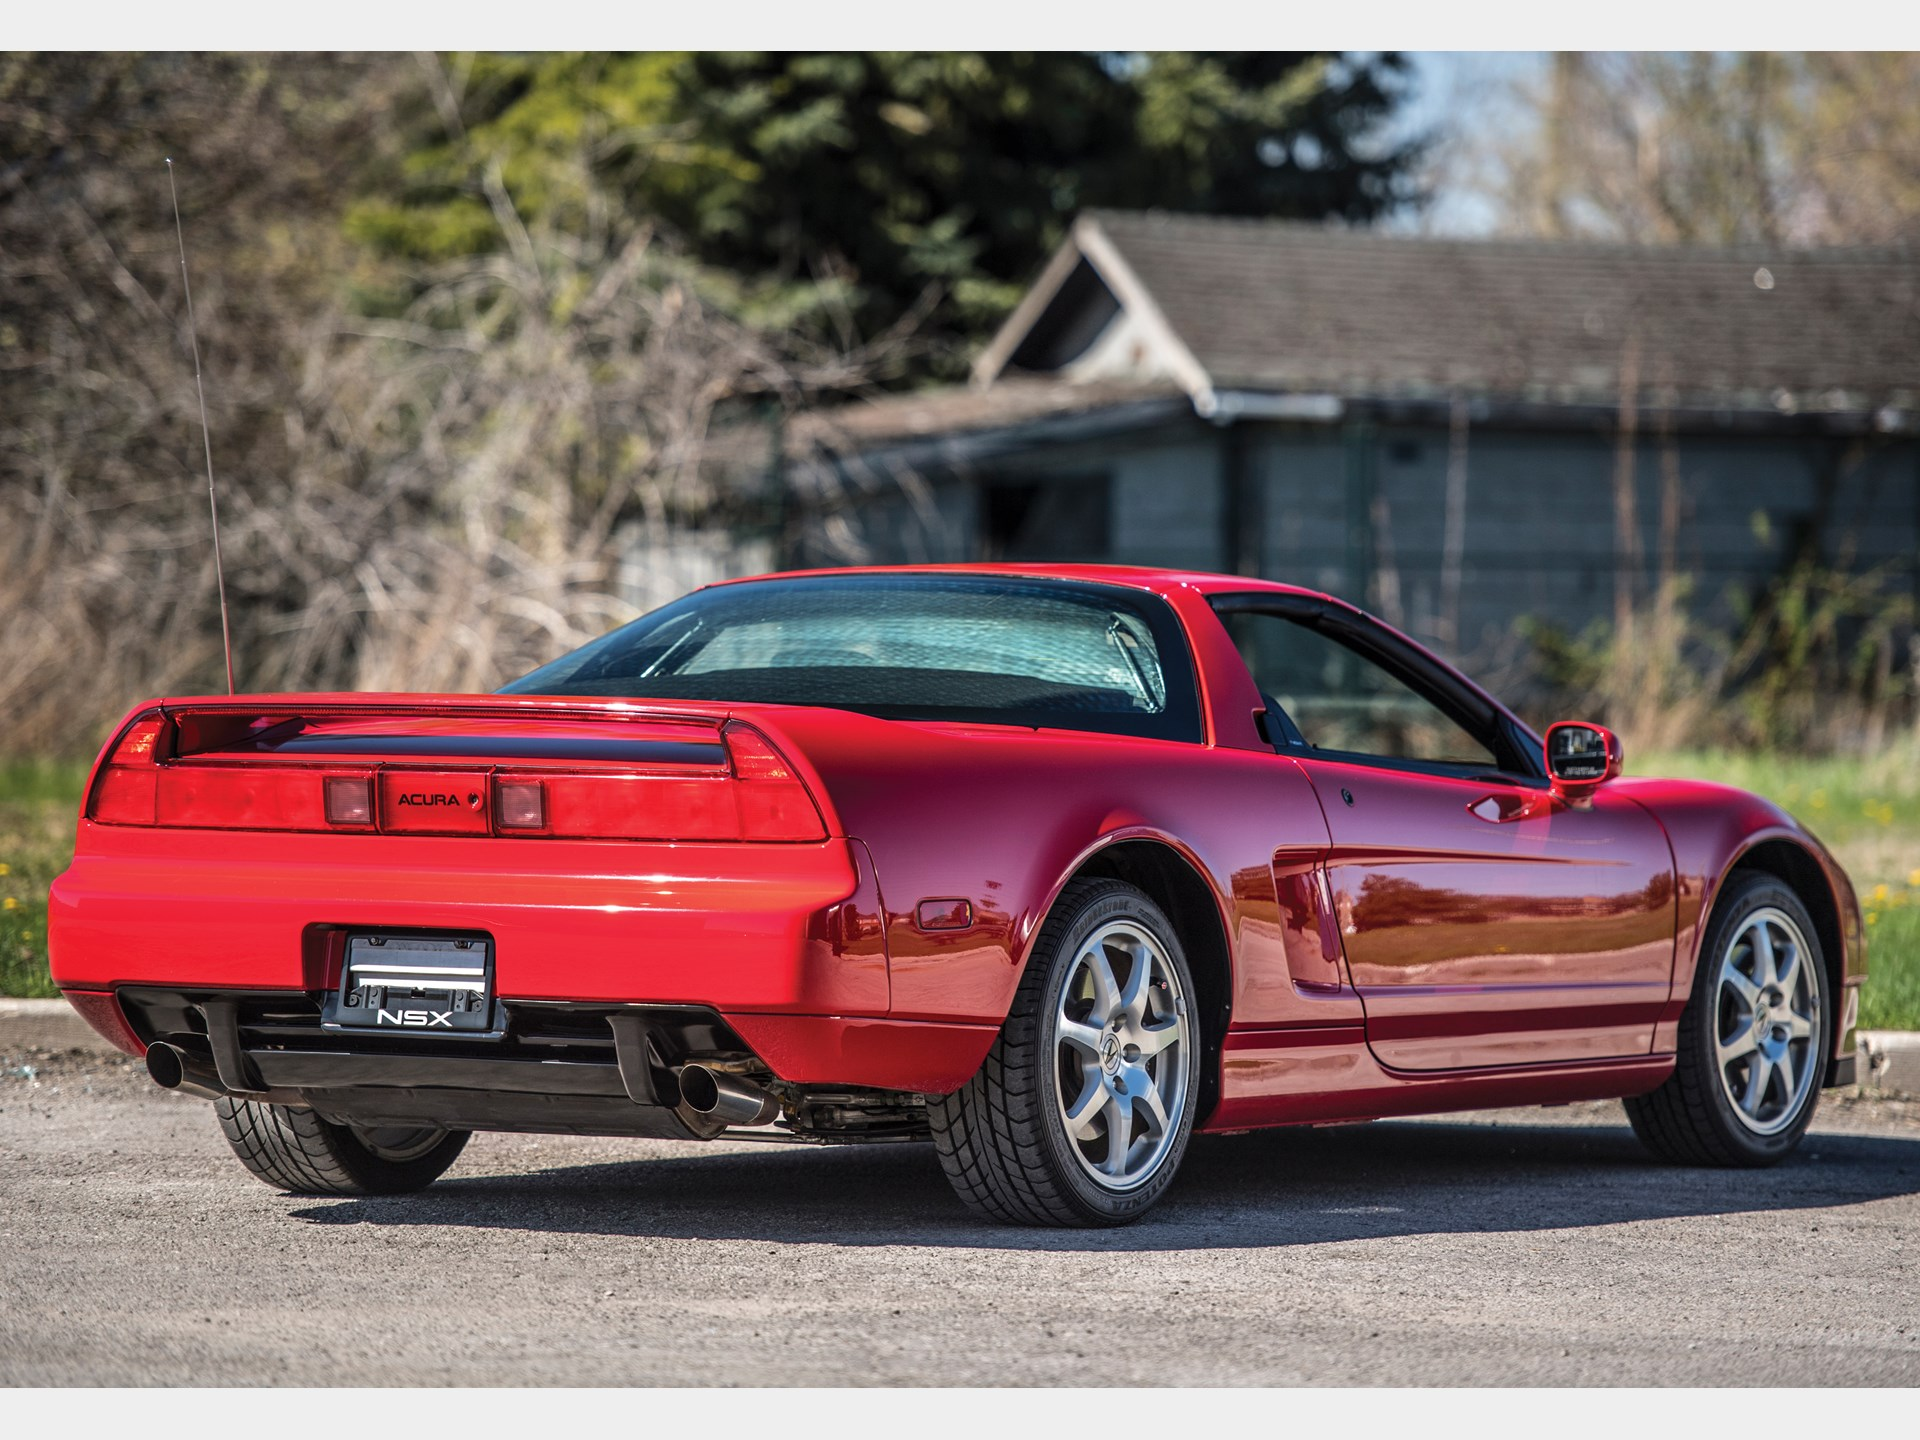 RM Sotheby's - 2000 Acura NSX-T | Monterey 2018 on